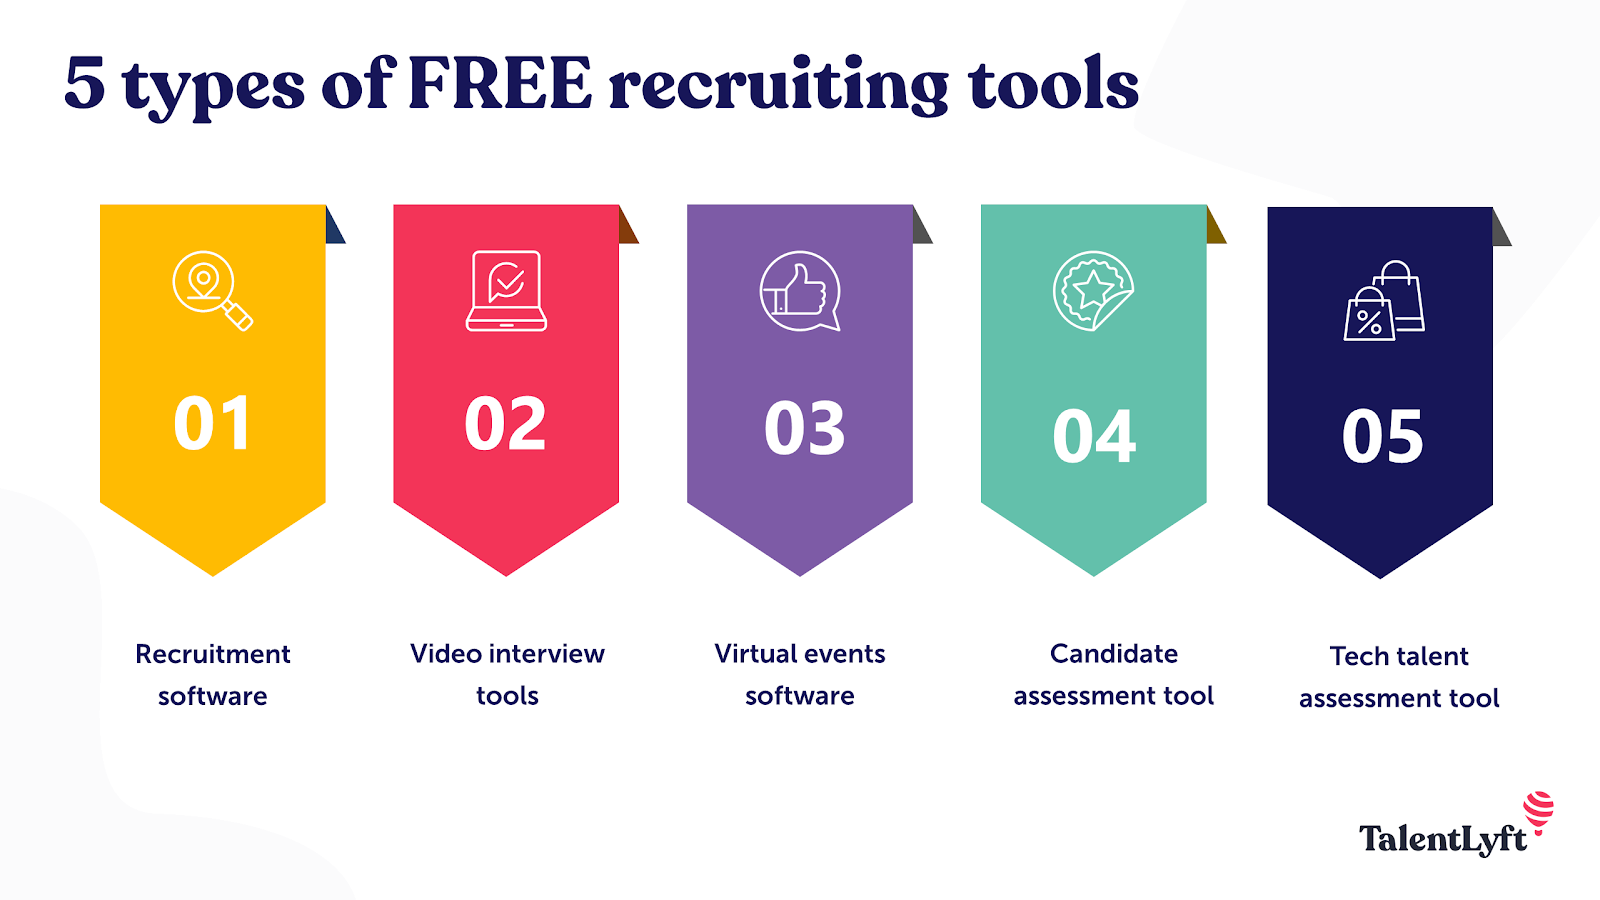 Free recruiting tools